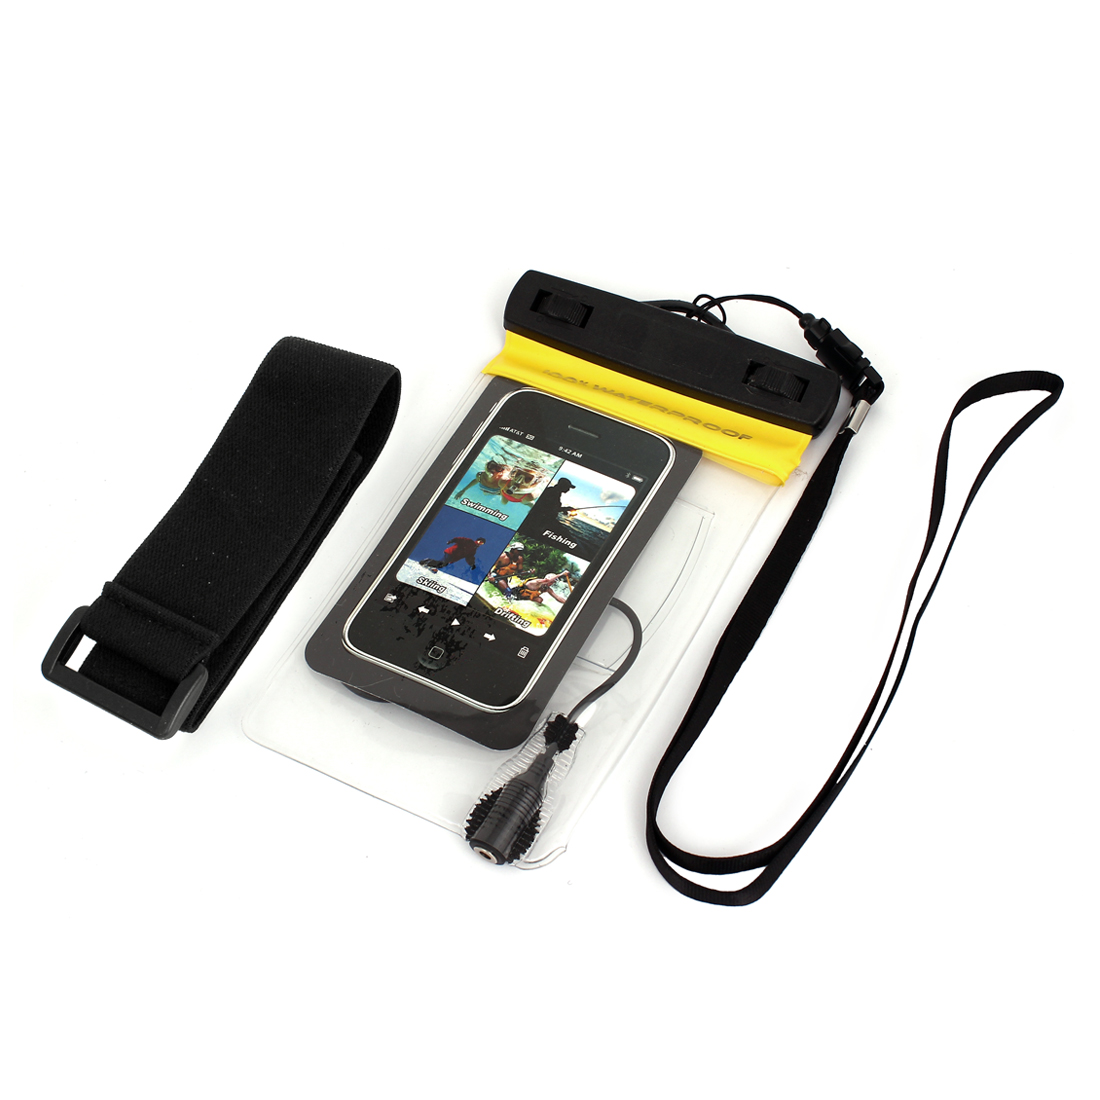 Waterproof Bag Case Holder Protector Yellow for iPone 4G w Earphone Armband